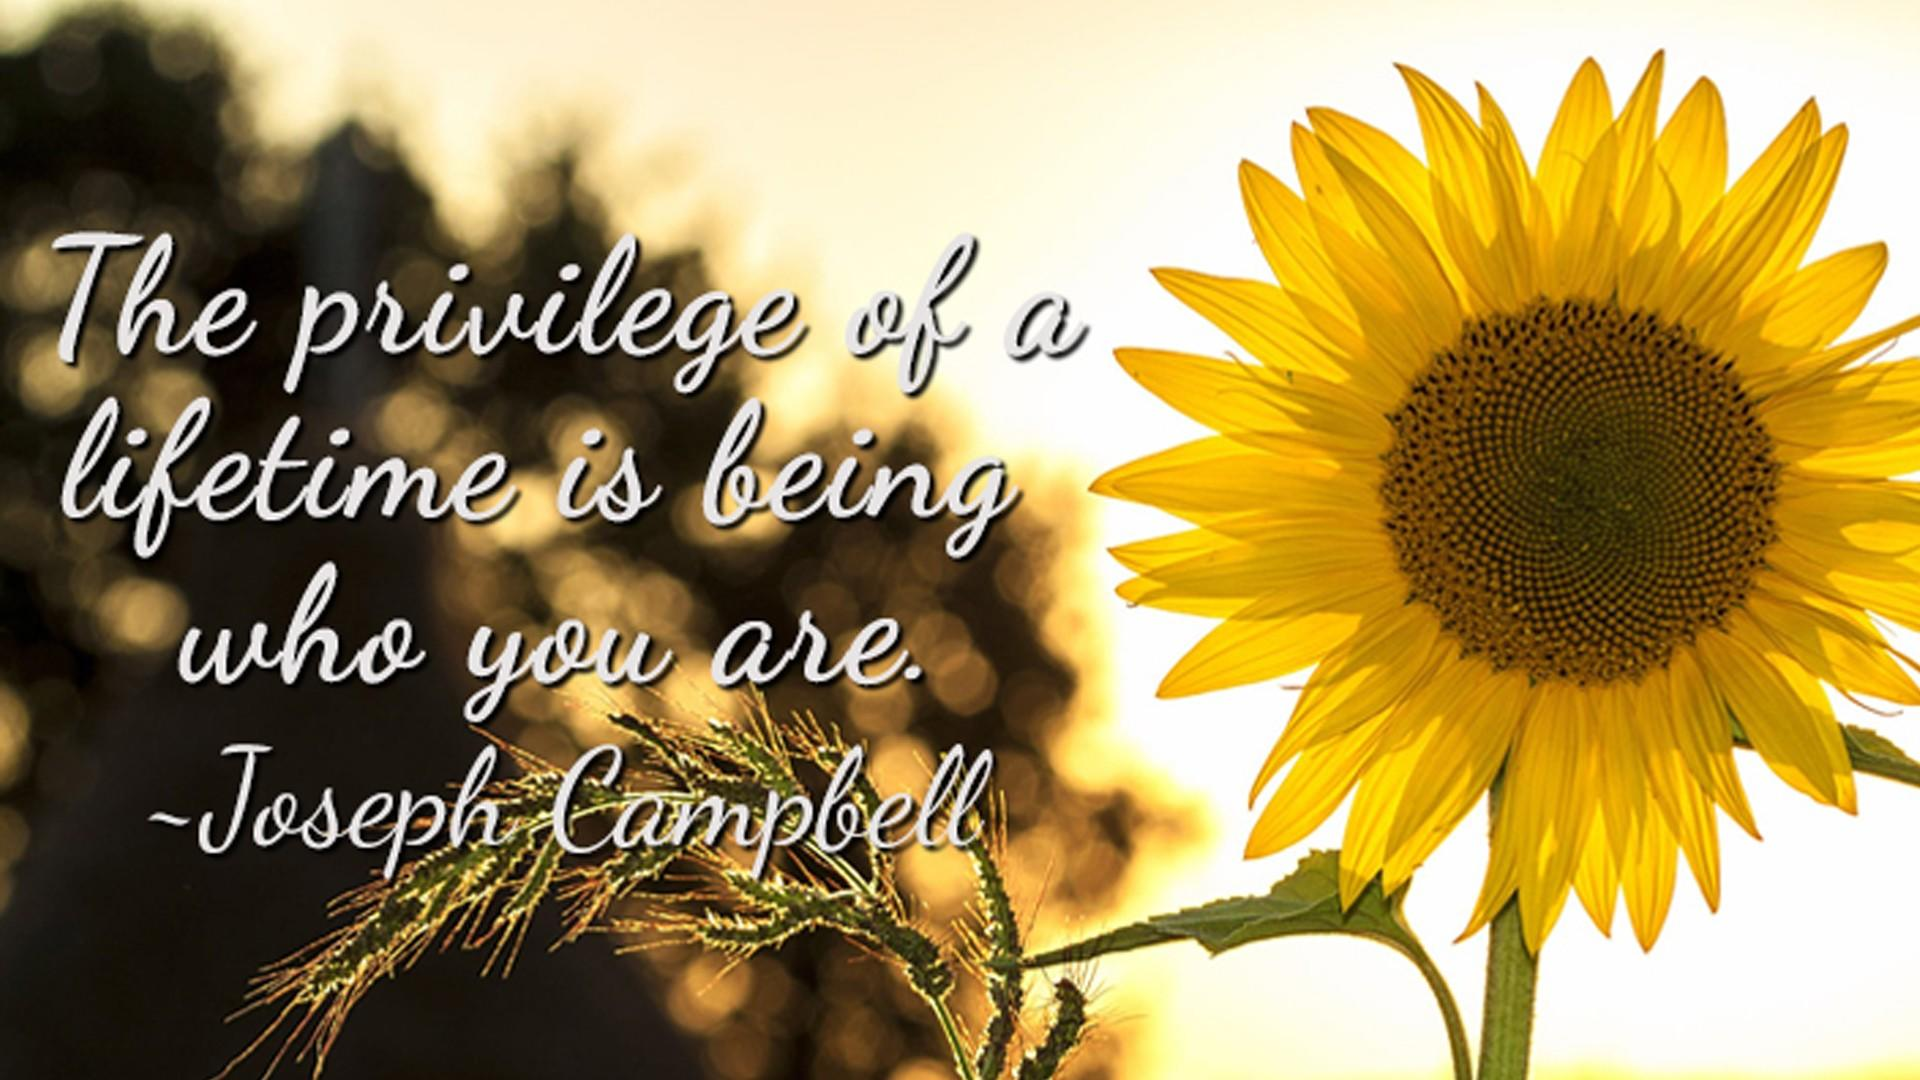 Joseph Campbell Quote - The privilege of a lifetime is being who you are